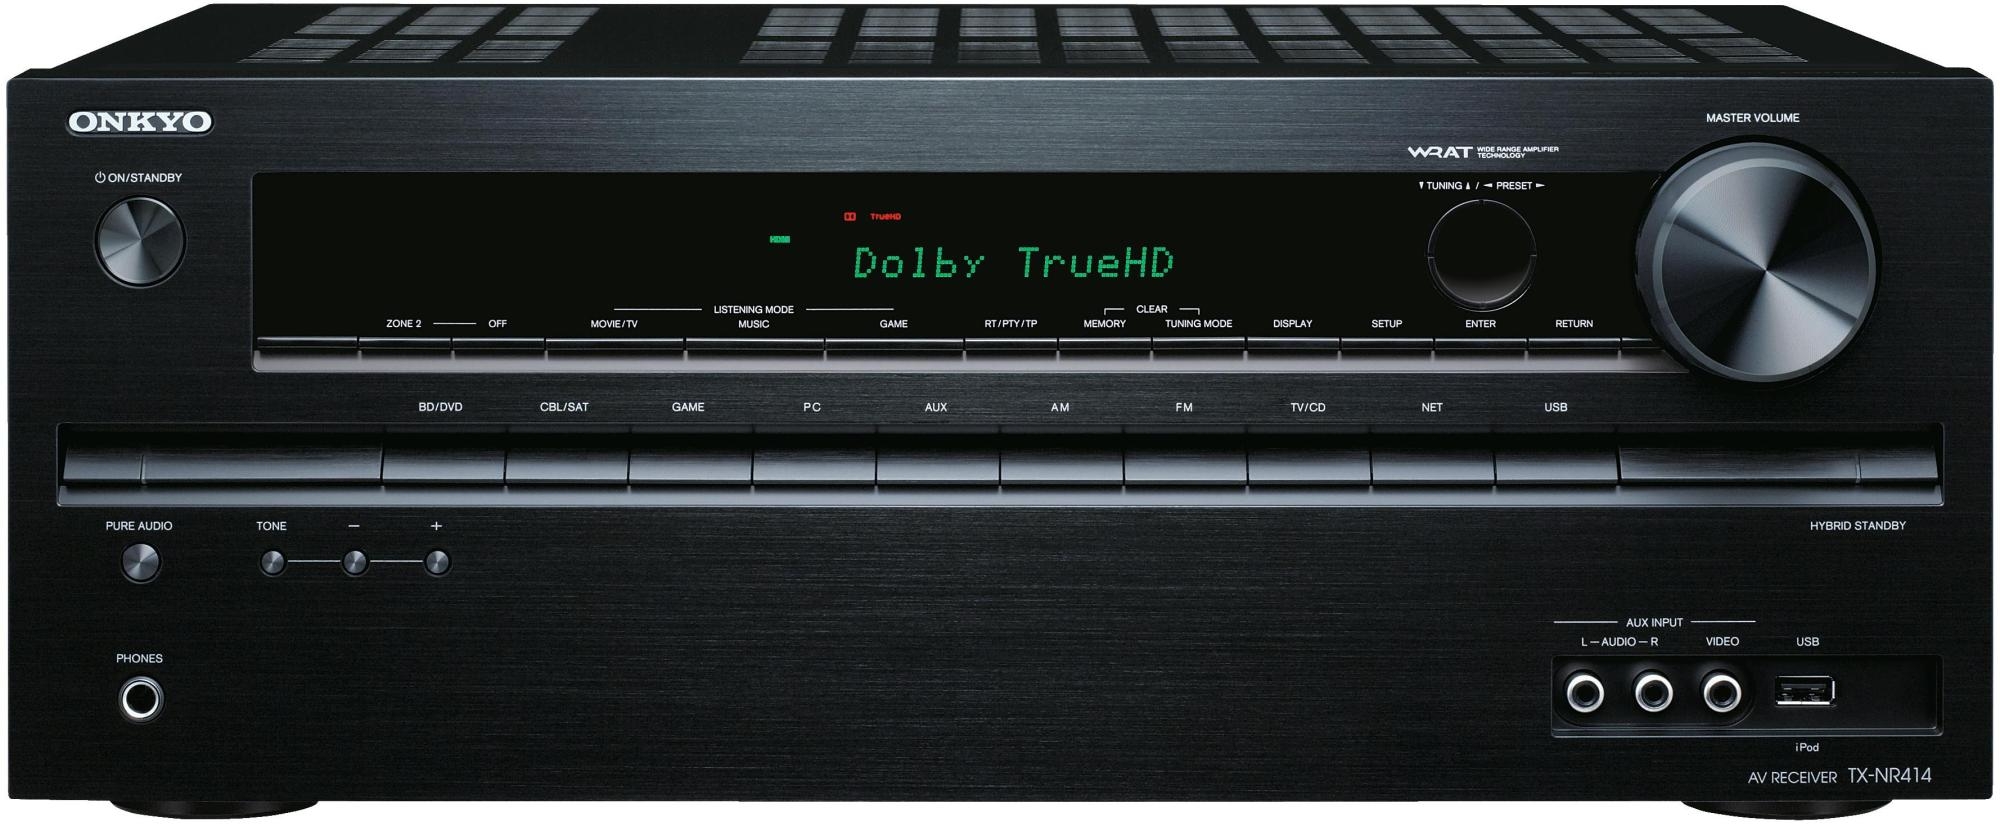 hight resolution of onkyo was our pick last year with the tx nr414 but it s now discontinued with nothing to directly replace it the step up tx nr525 is the closest currently